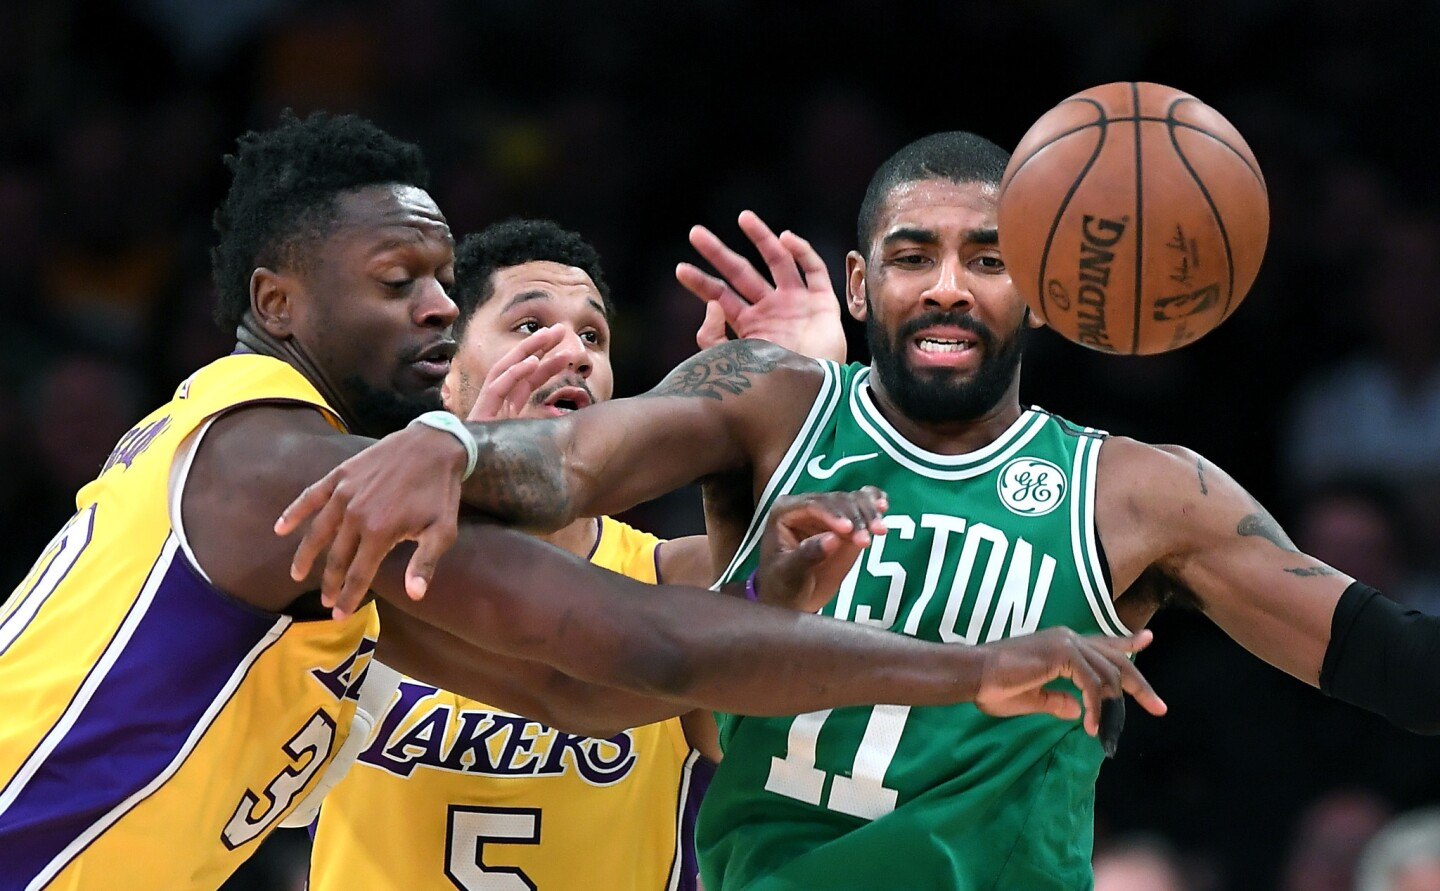 Lakers forward Julius Randle knocks the ball away form Celtics guard Kyrie Irving during the fourth quarter of a game Tuesday at Staples Center.